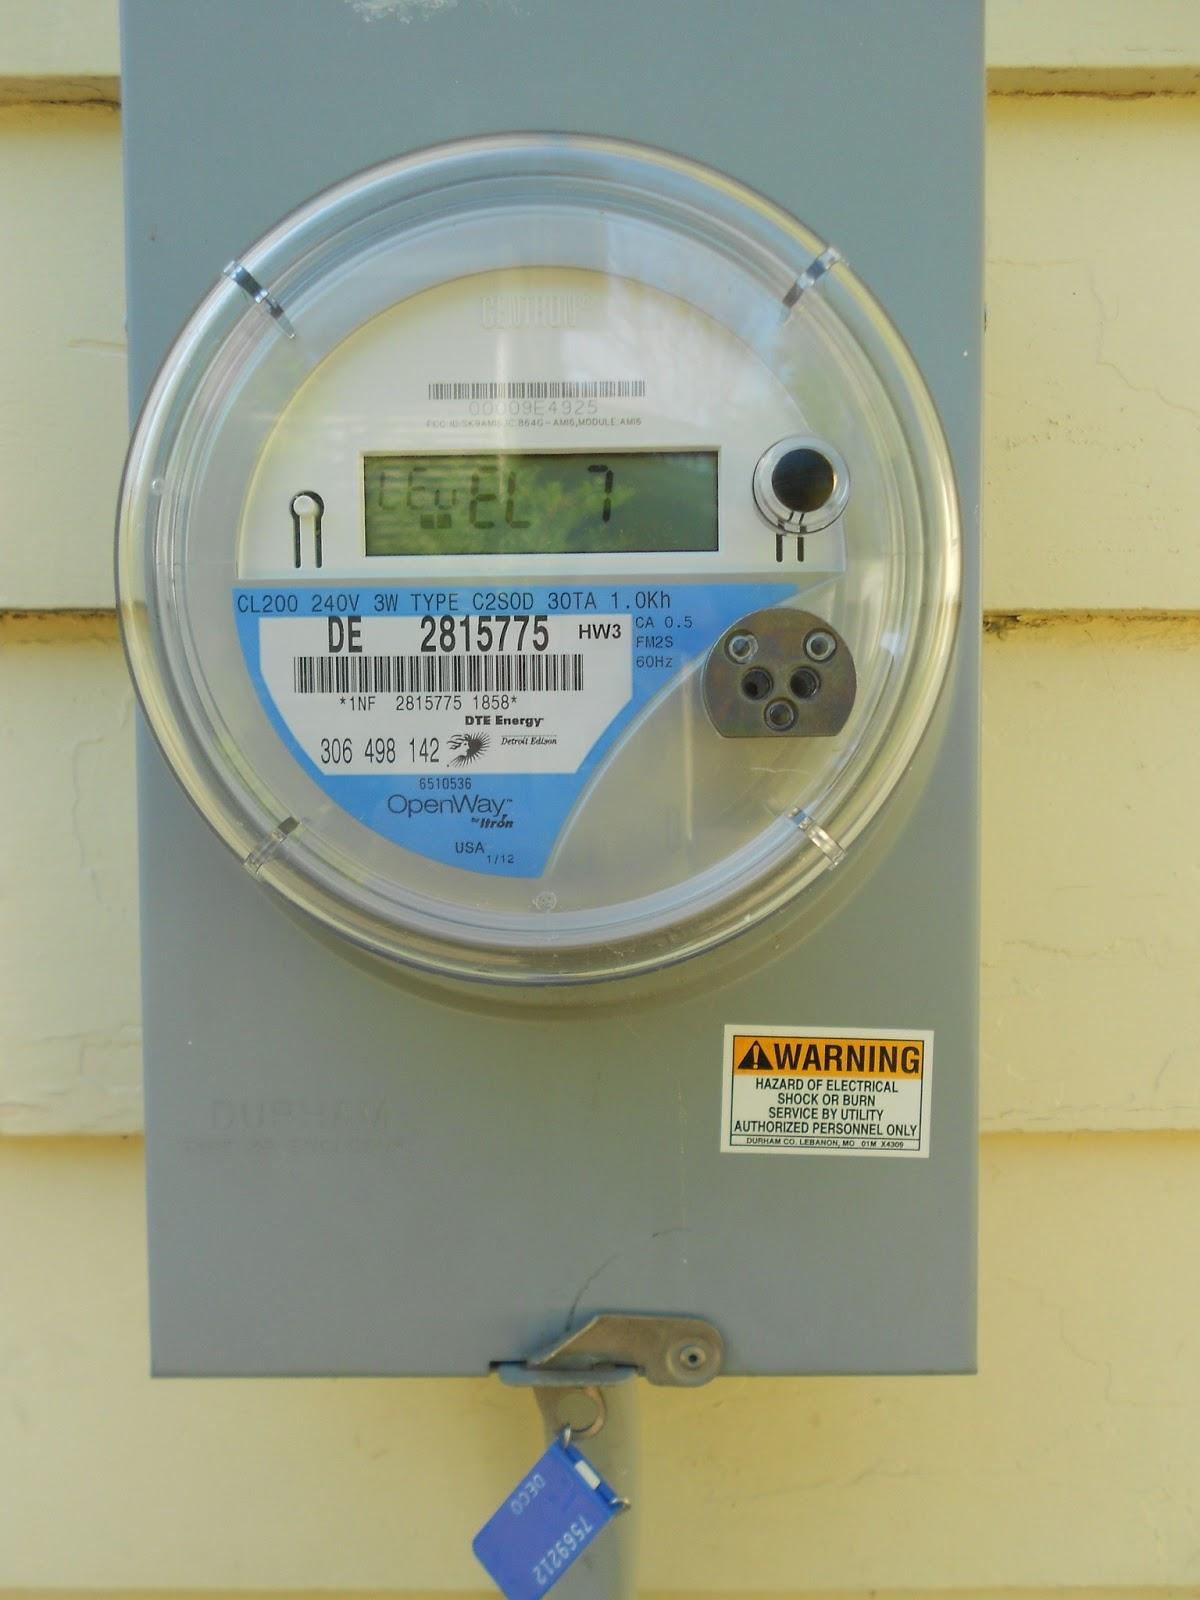 A smart meter on the home of an Ann Arbor resident. Image courtesy of the blog Magnetic Neighborhood.